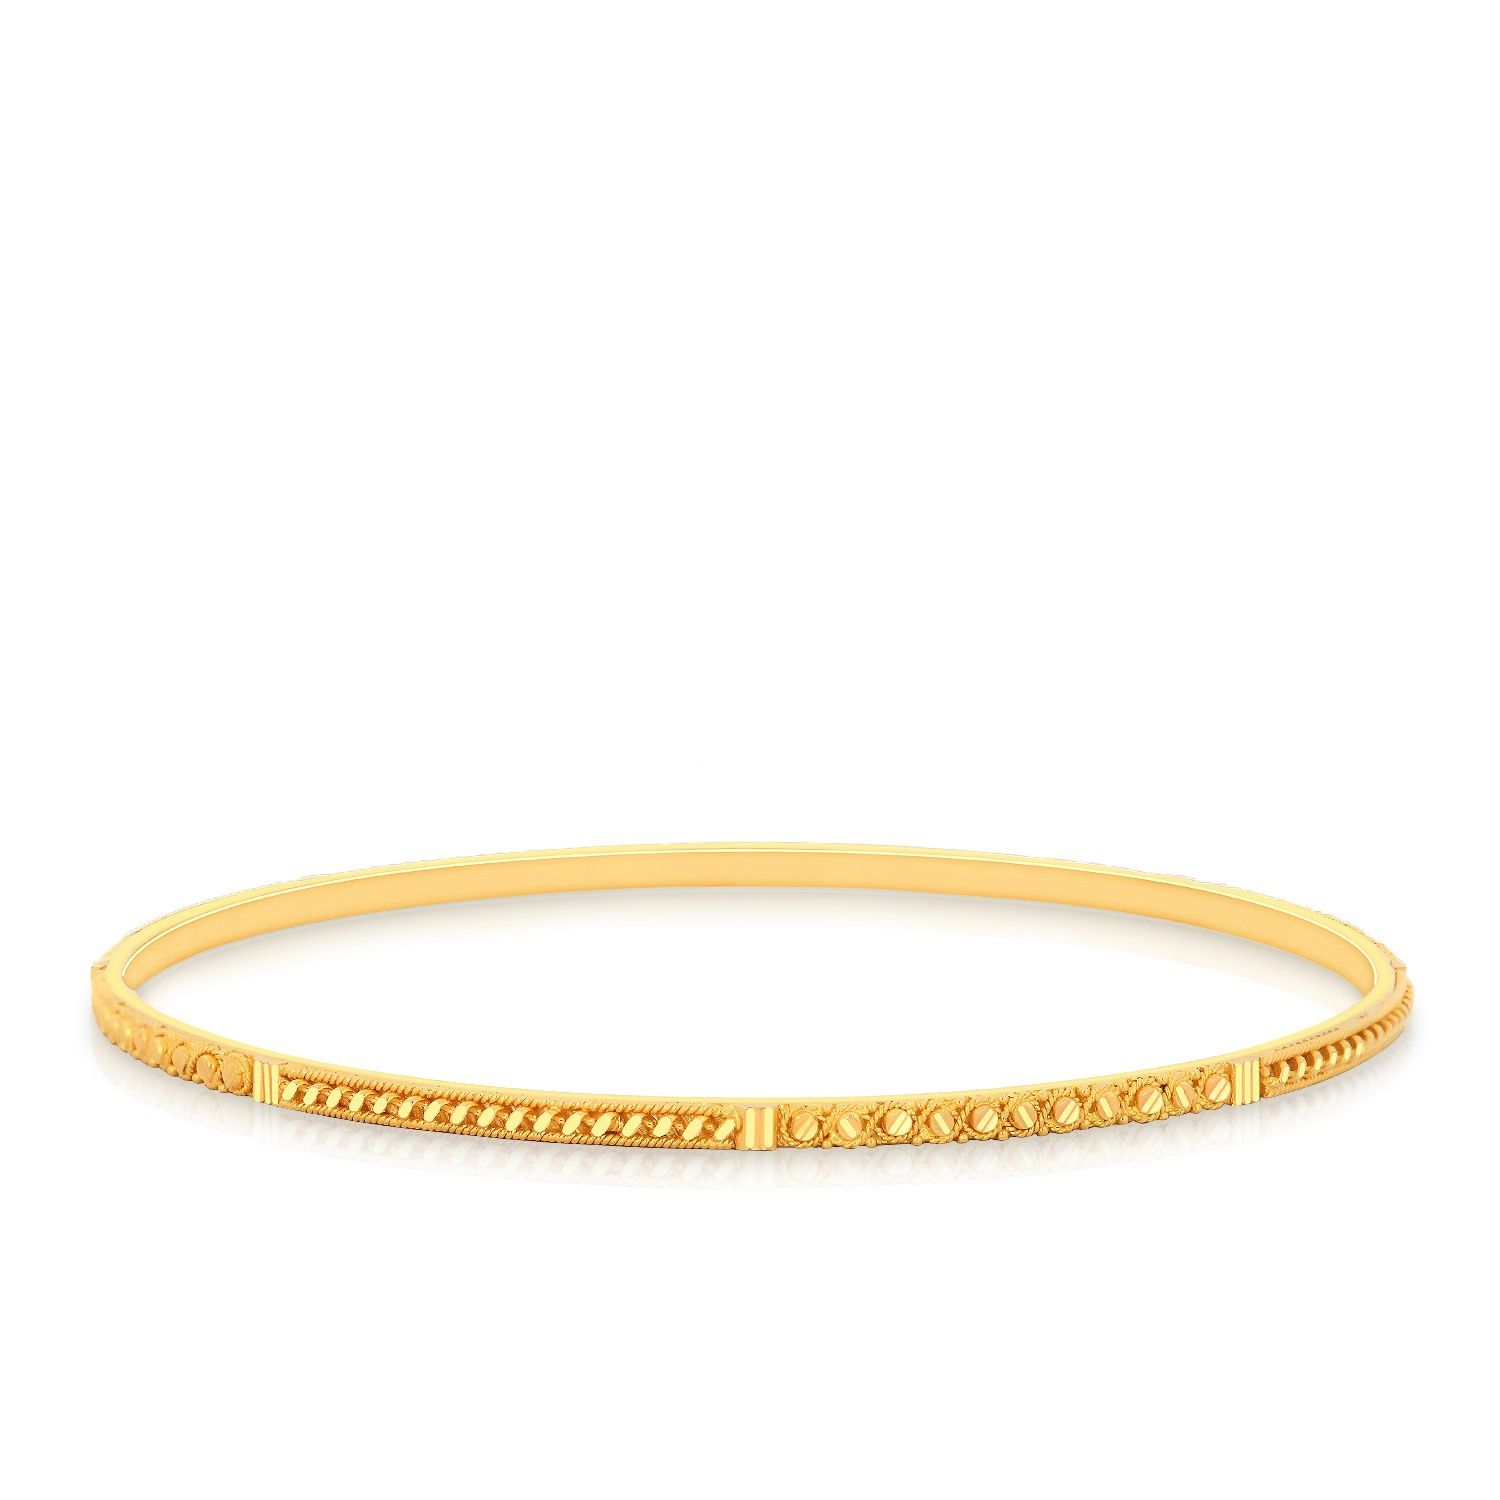 jewellery india the twirled wonder gold bracelet online bluestone bangles bangle designs plain in buy pics